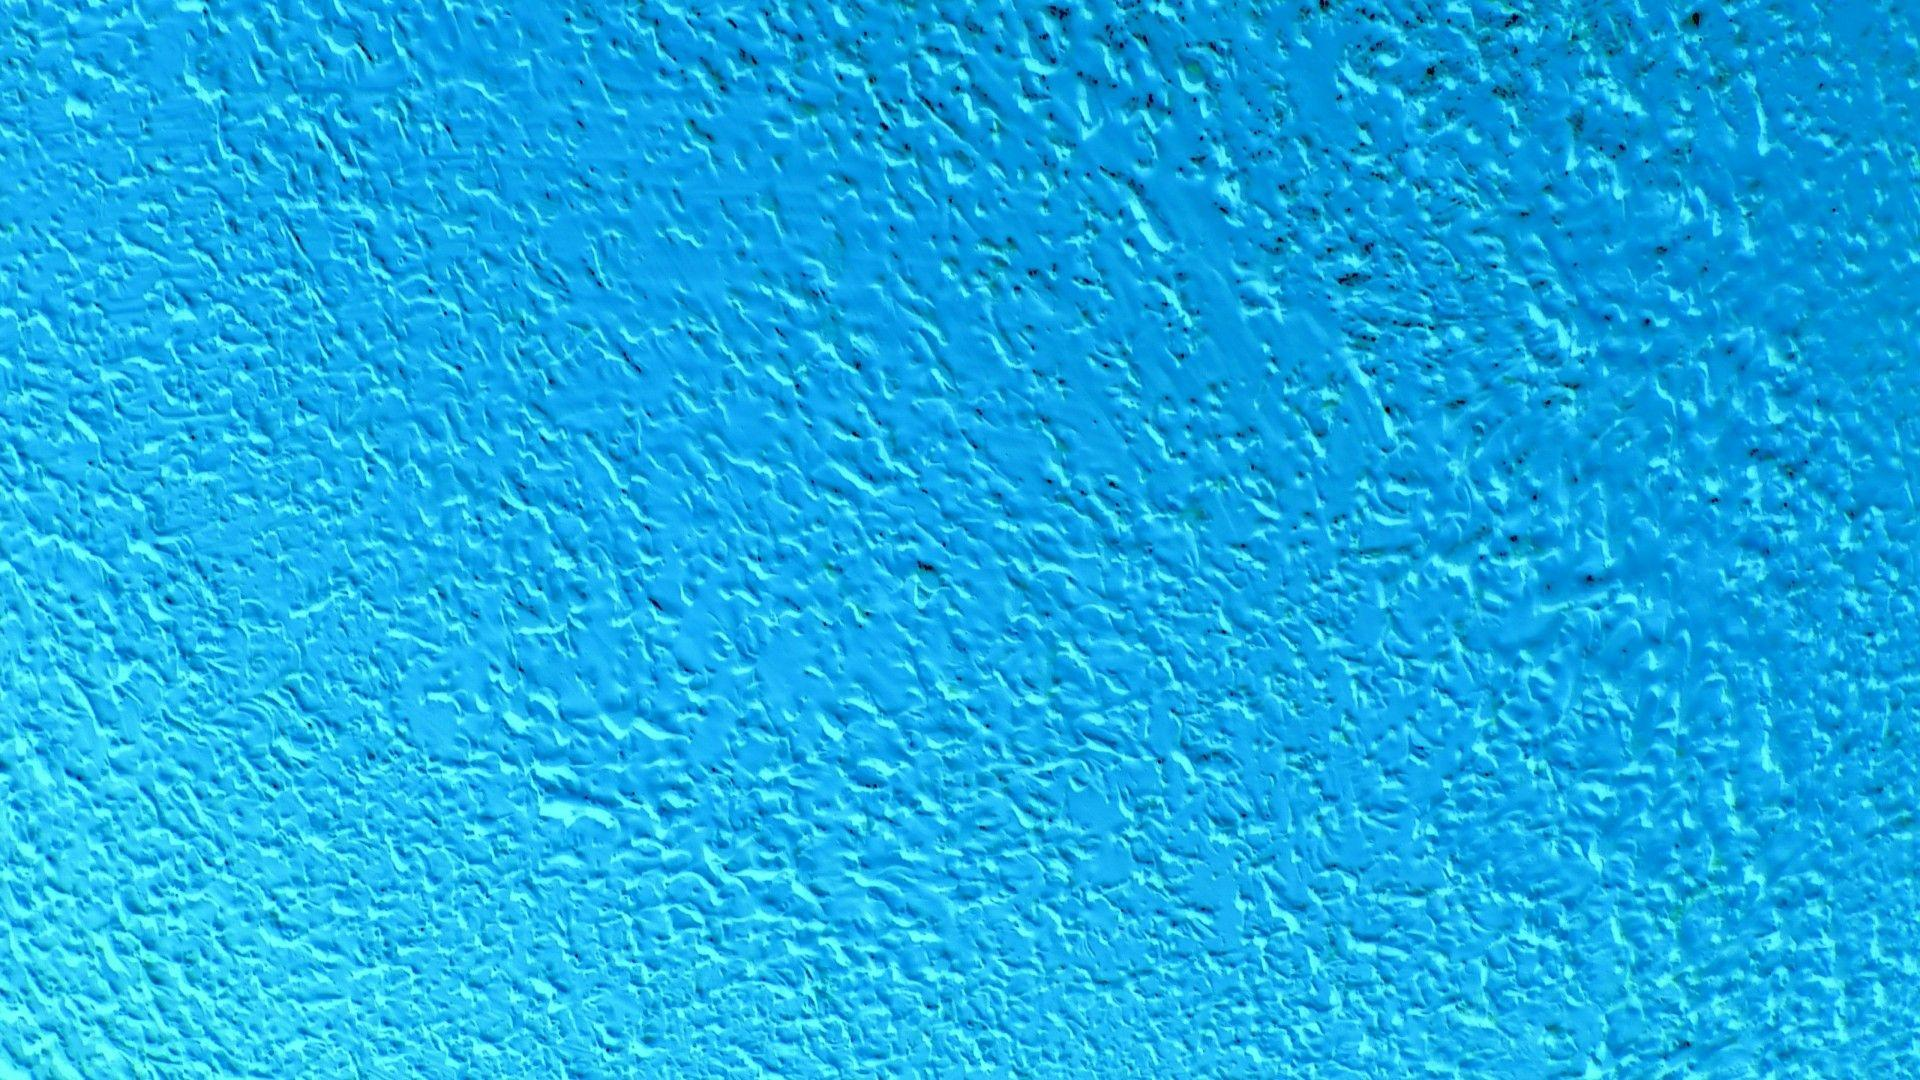 Sky Blue Textured Background Free Stock Photo - Public Domain Pictures